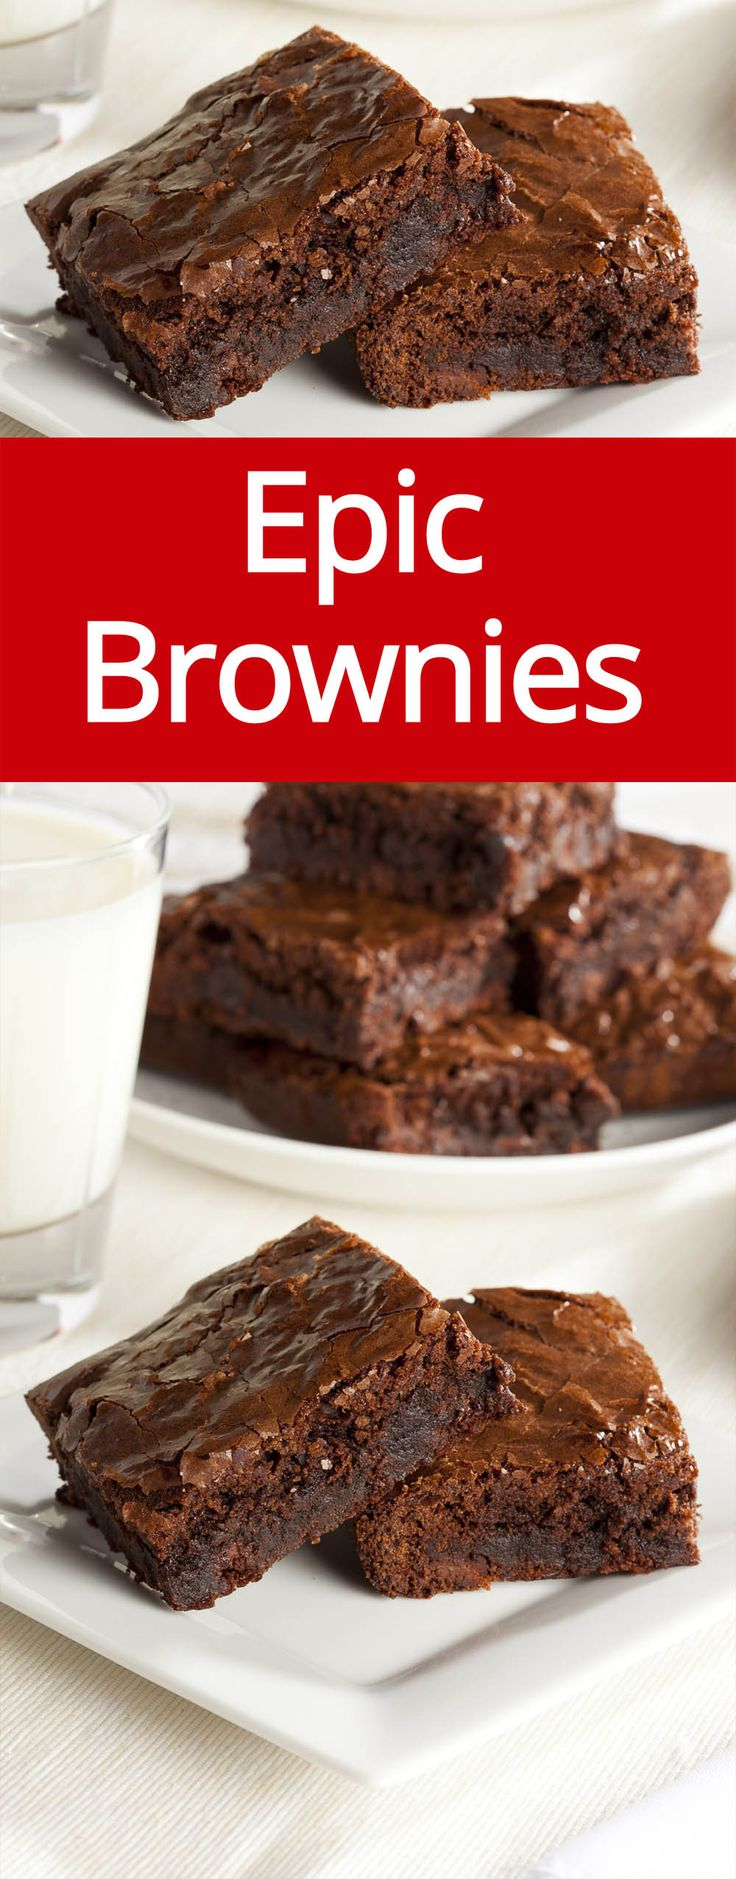 Brownies gostosos que nao levam chocolate!